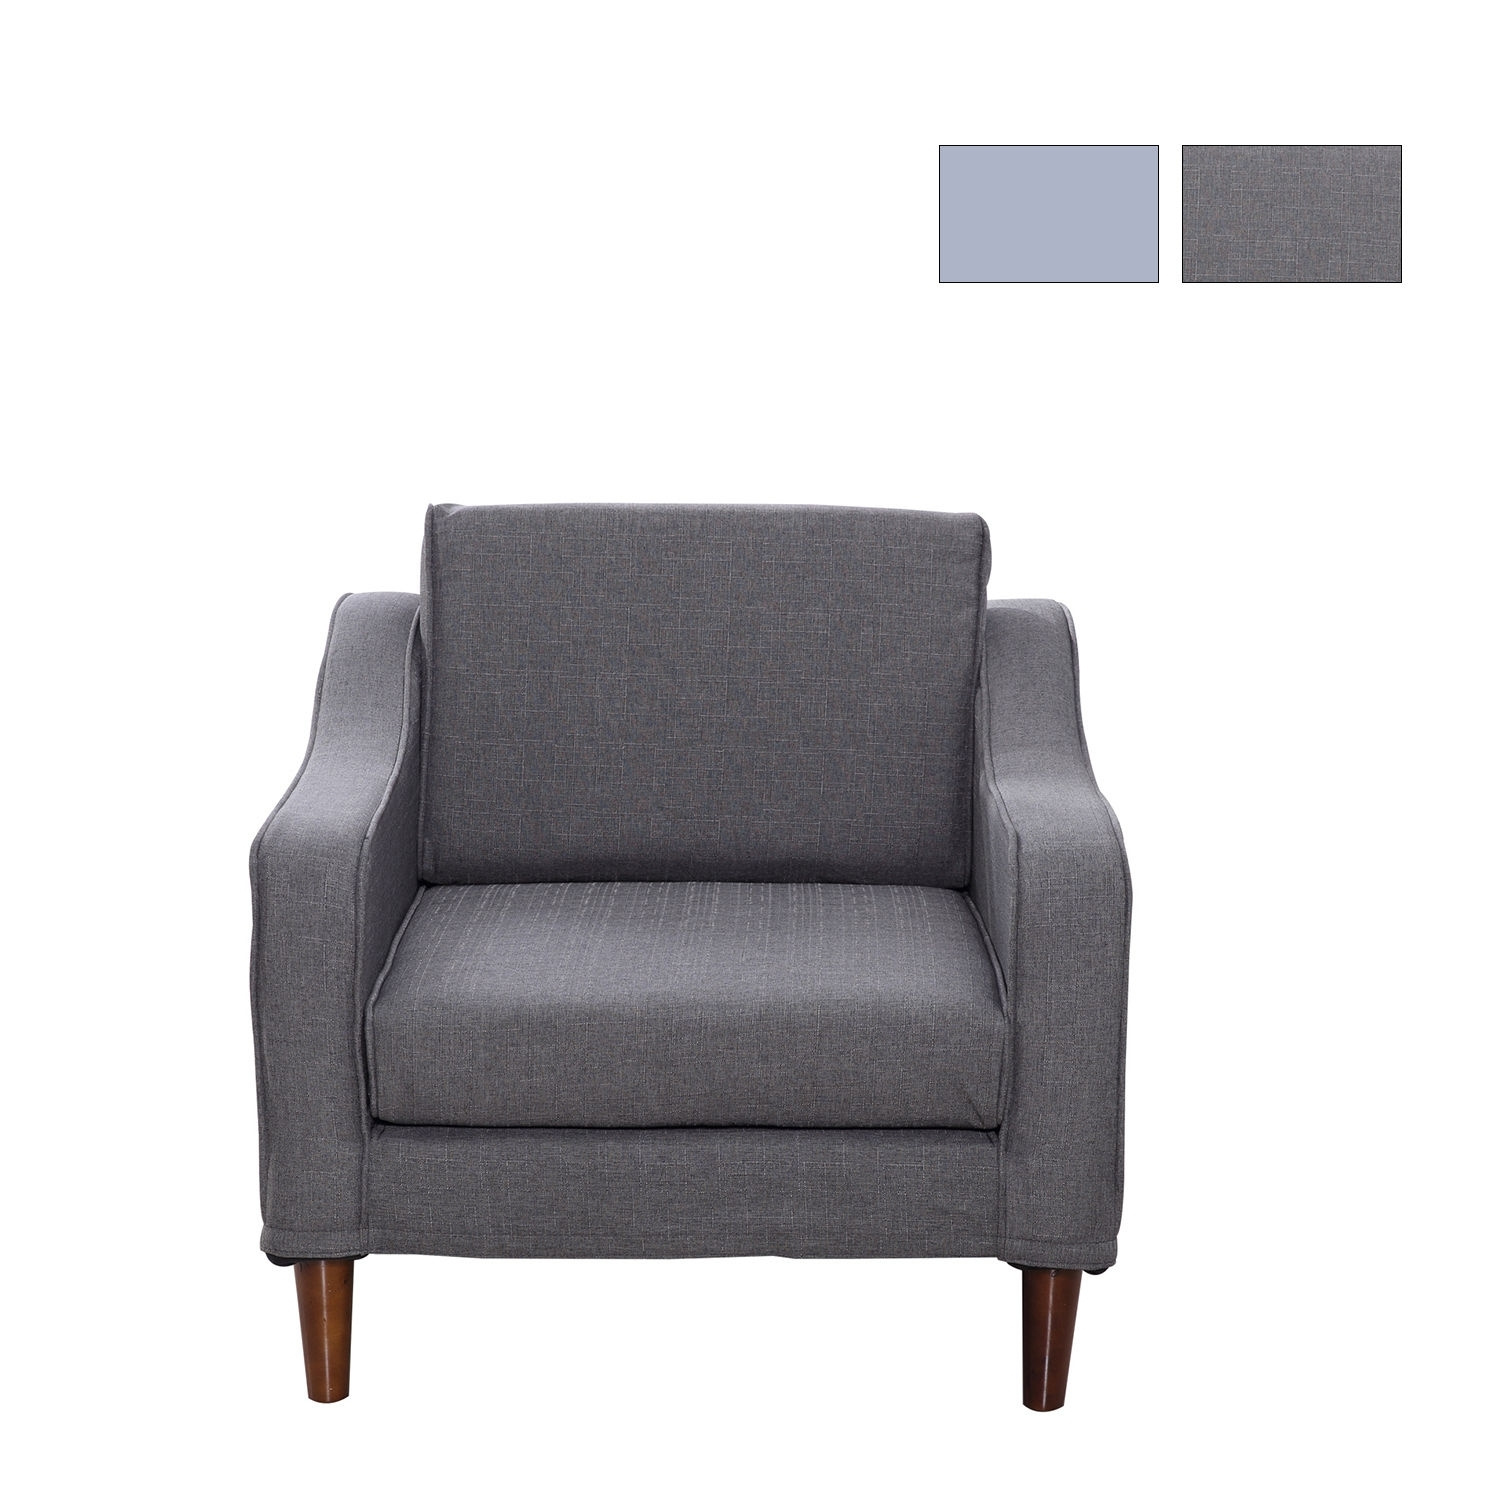 Sofa Arm Chair Single Seat Wood Chaise Linen Couch Cover Lounge Inside Single Sofas (Image 9 of 10)